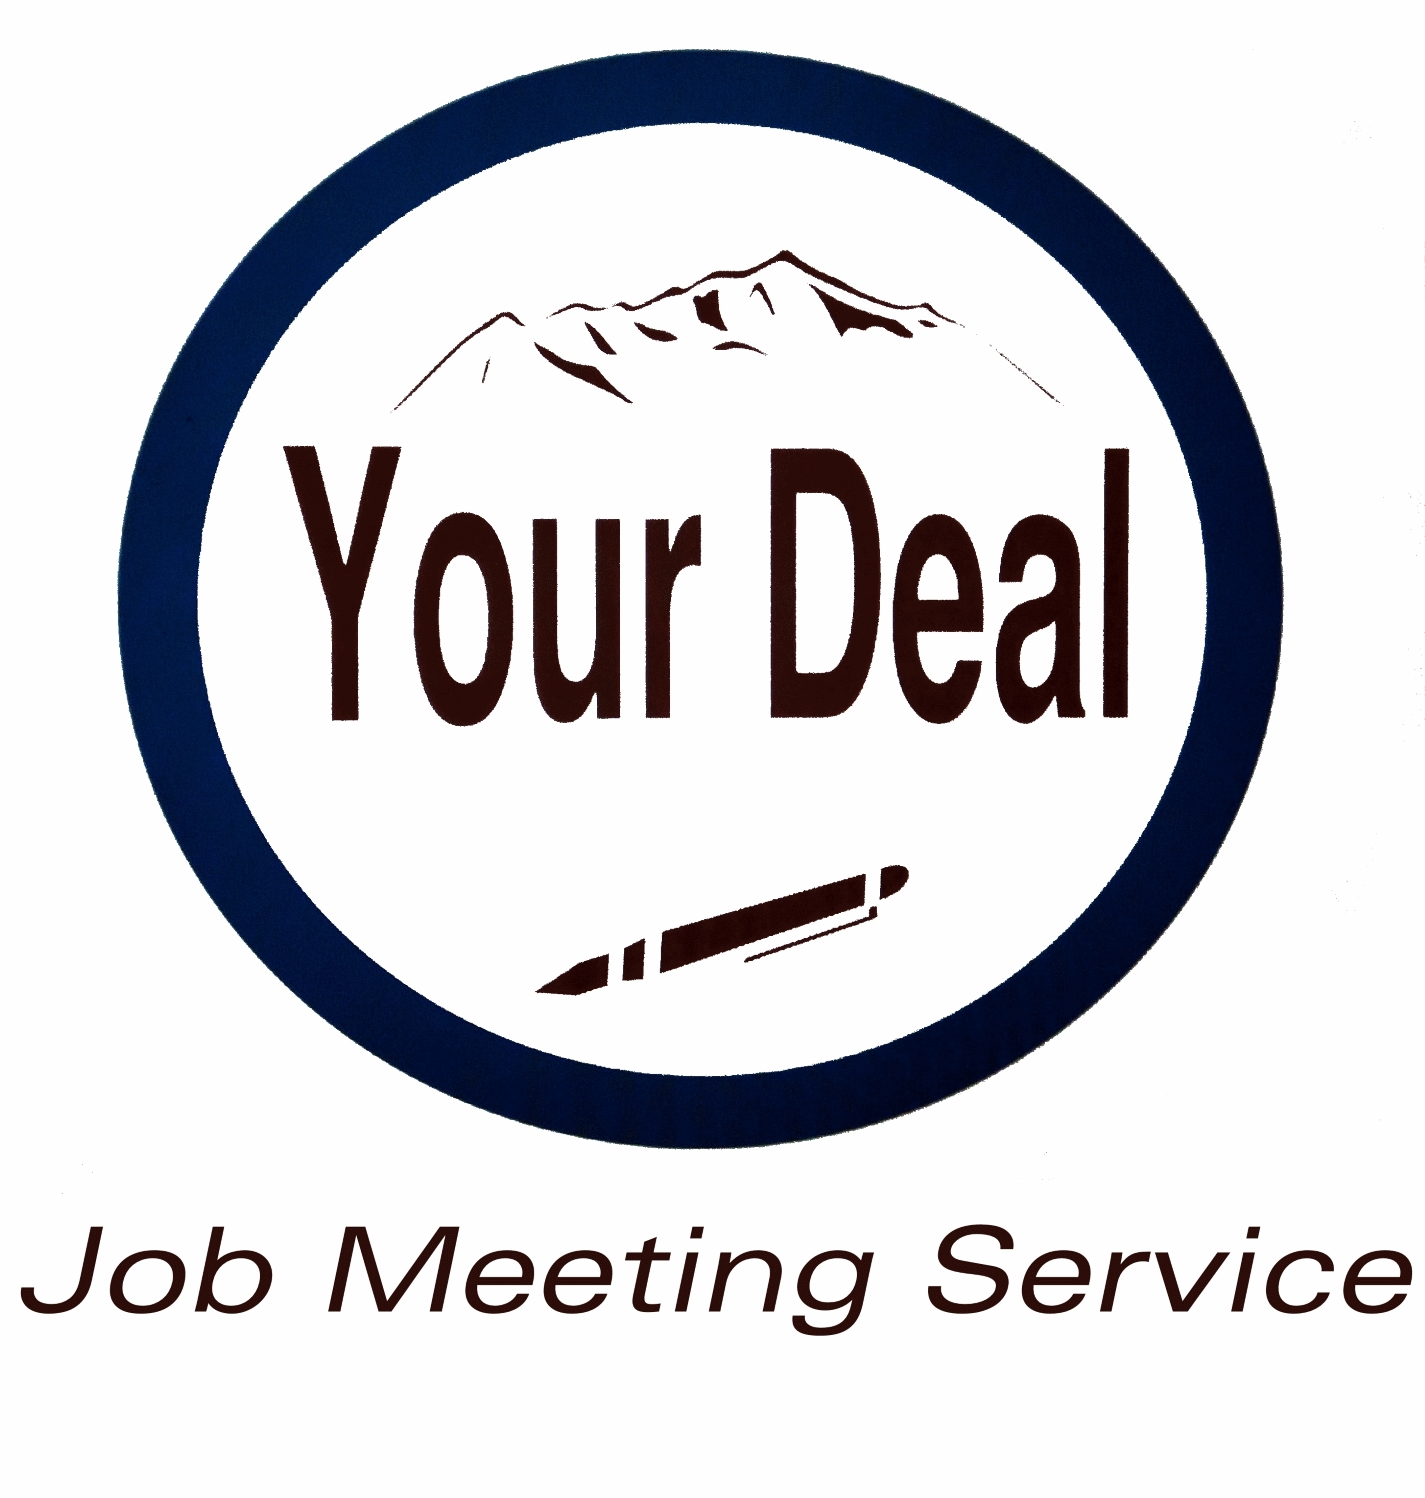 Your Deal di Amurri Samuele image